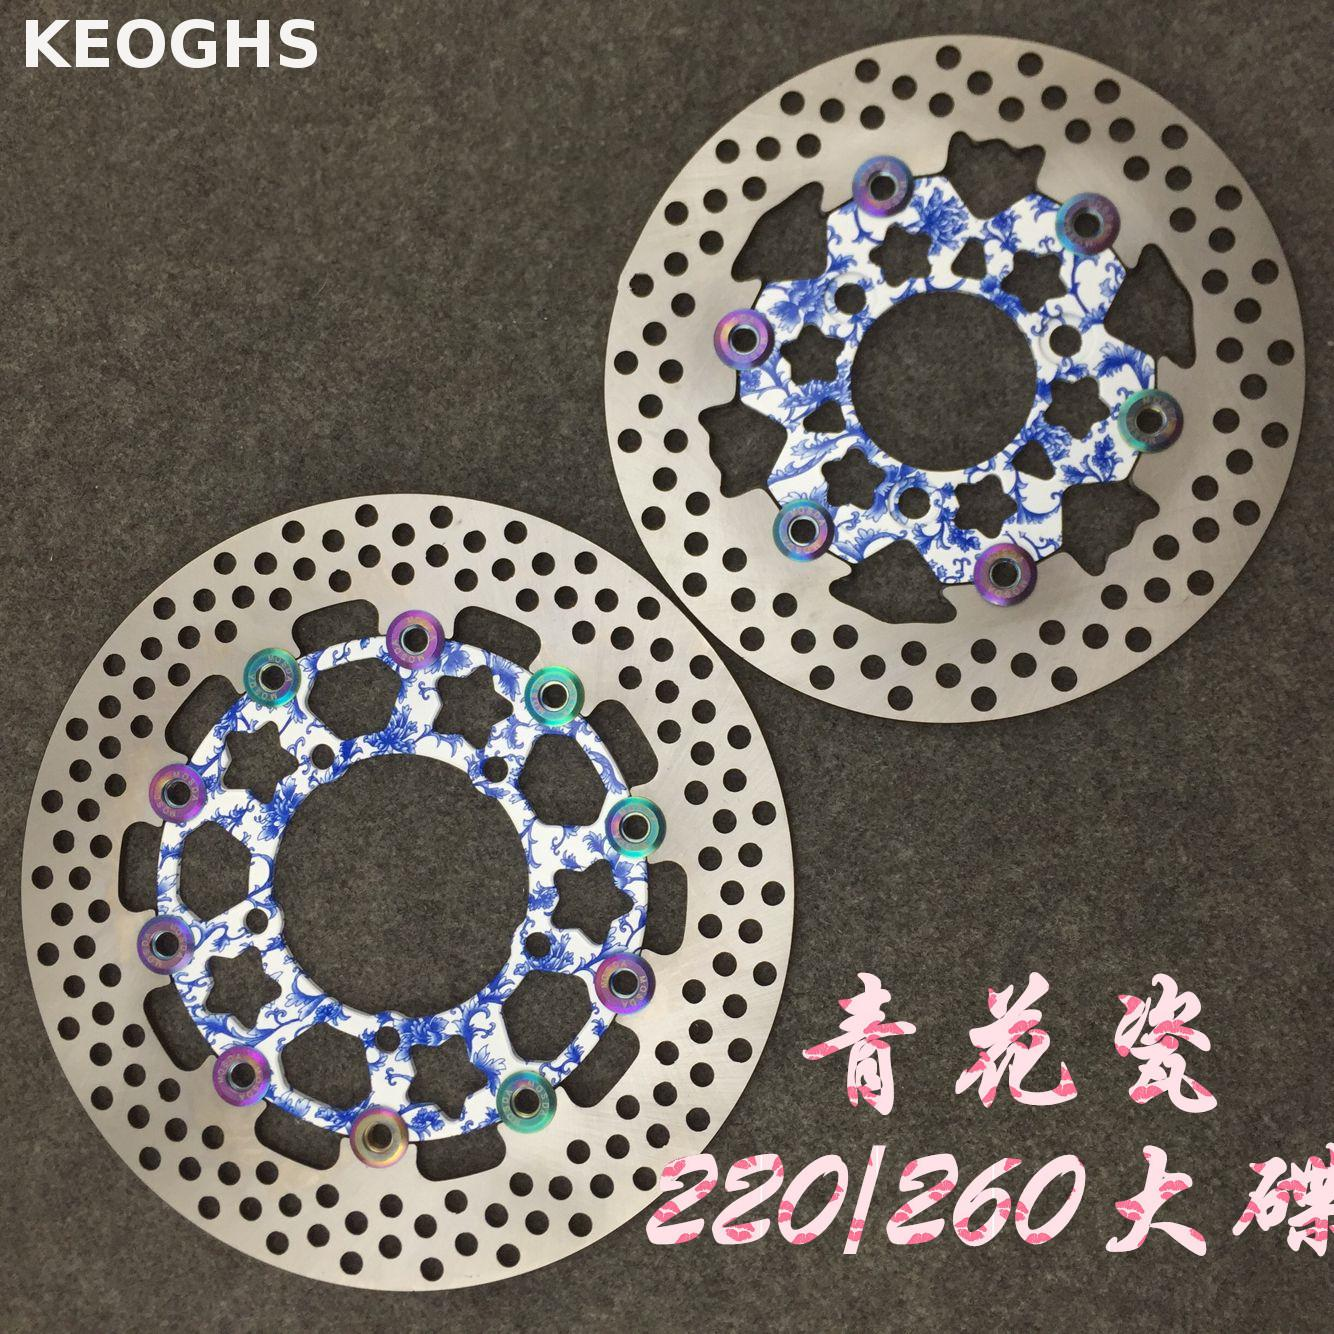 Keoghs Motorcycle Brake Disc 220mm 260mm White And Blue Chinese Style For Yamaha Scooter Cygnus modify keoghs motorcycle floating brake disc 240mm diameter 5 holes for yamaha scooter